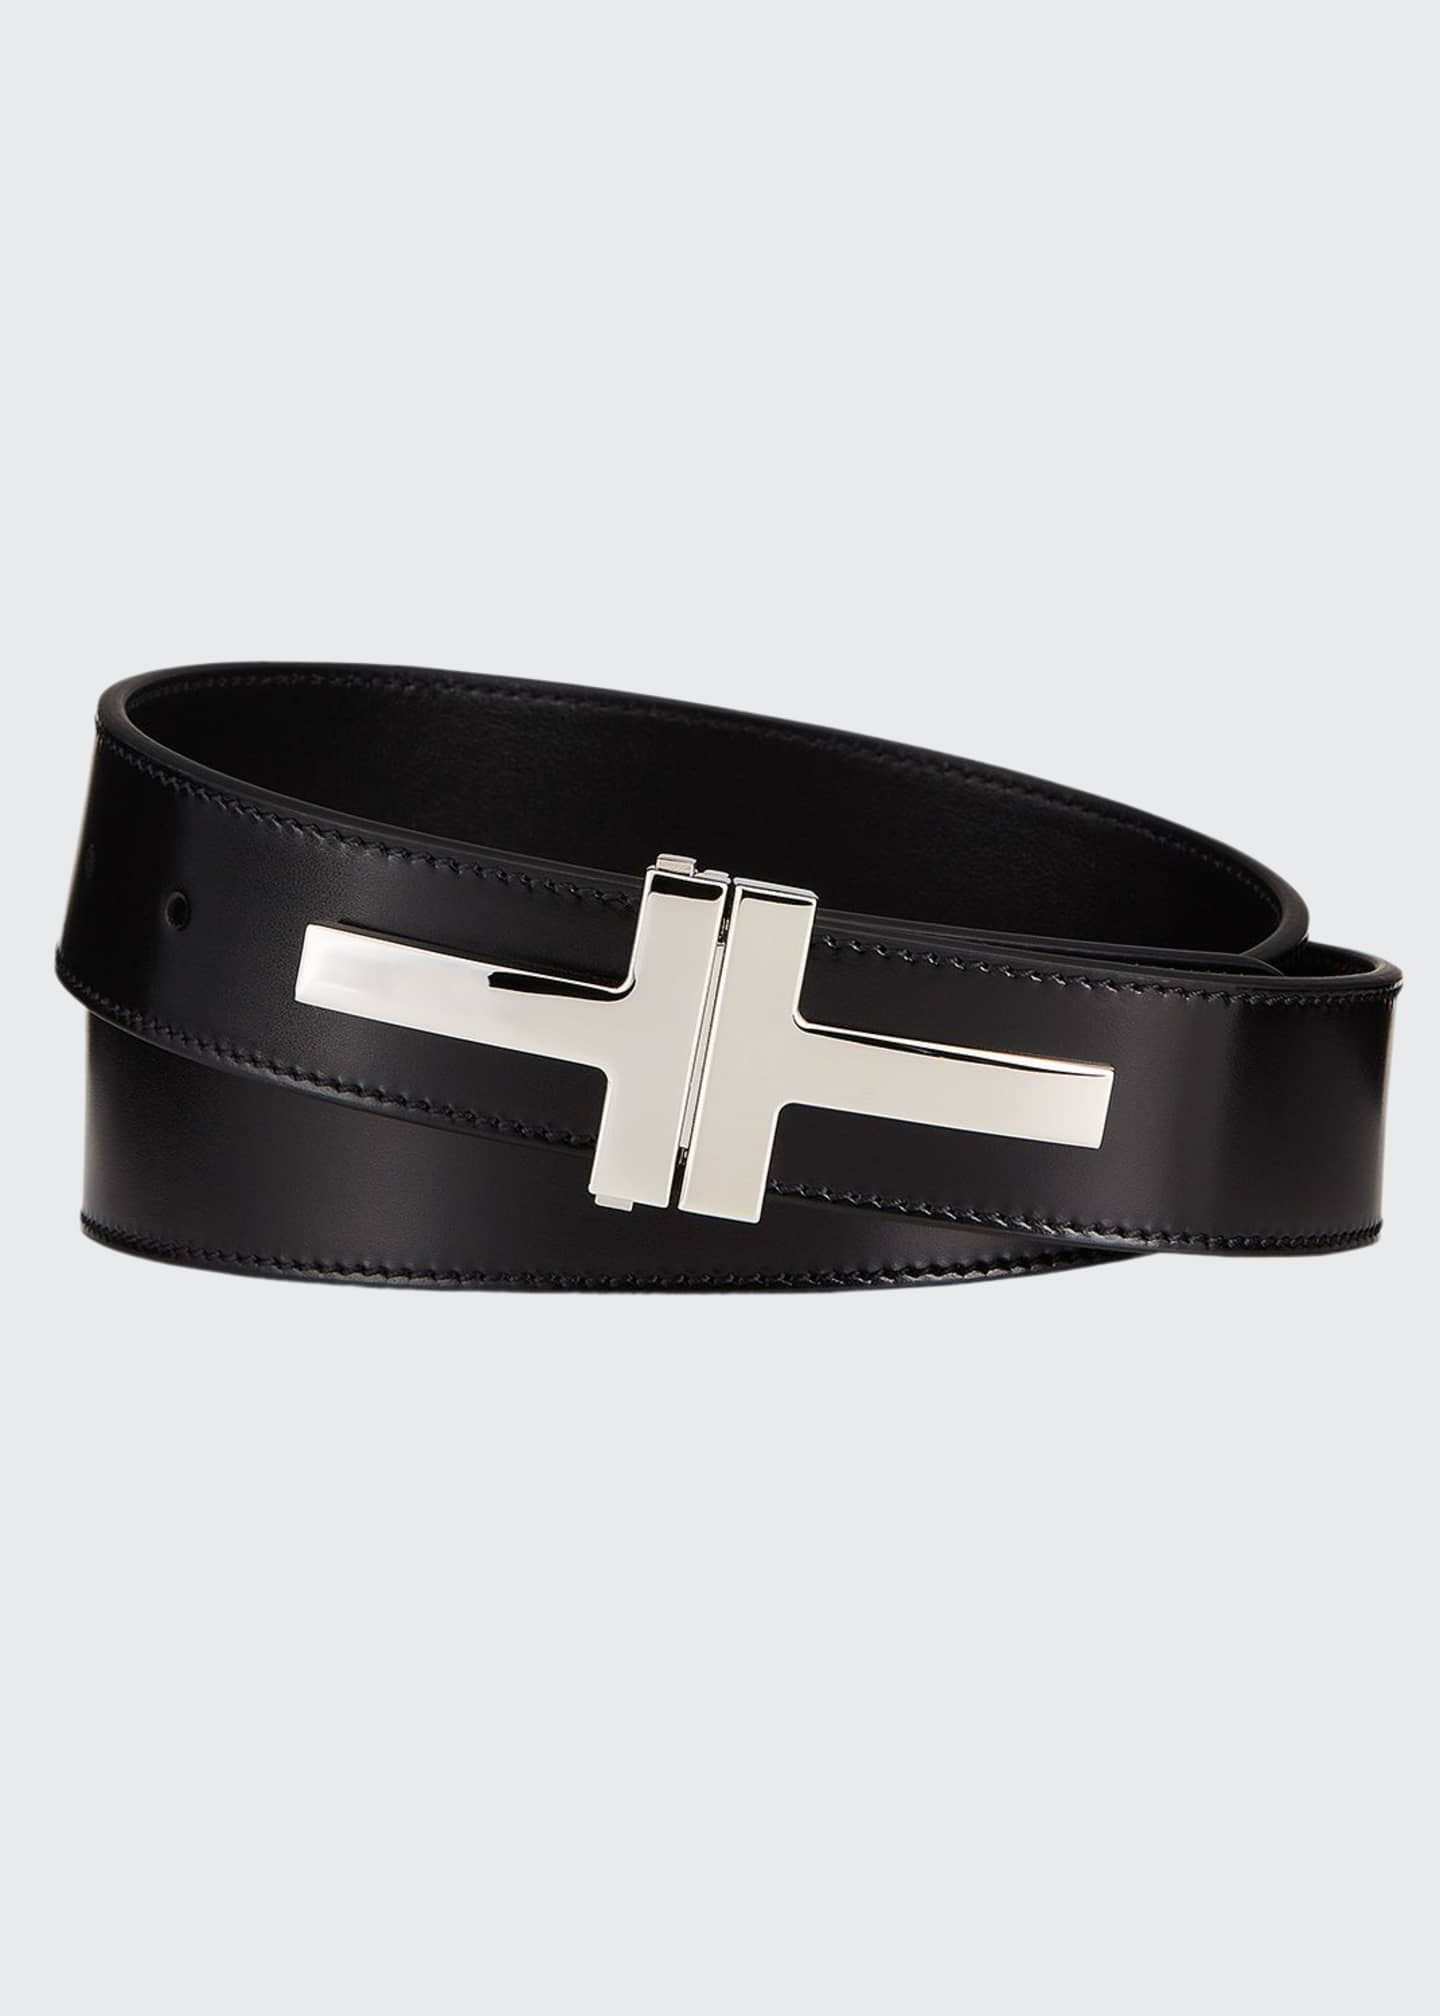 Image 1 of 1: Men's Double T Leather Belt